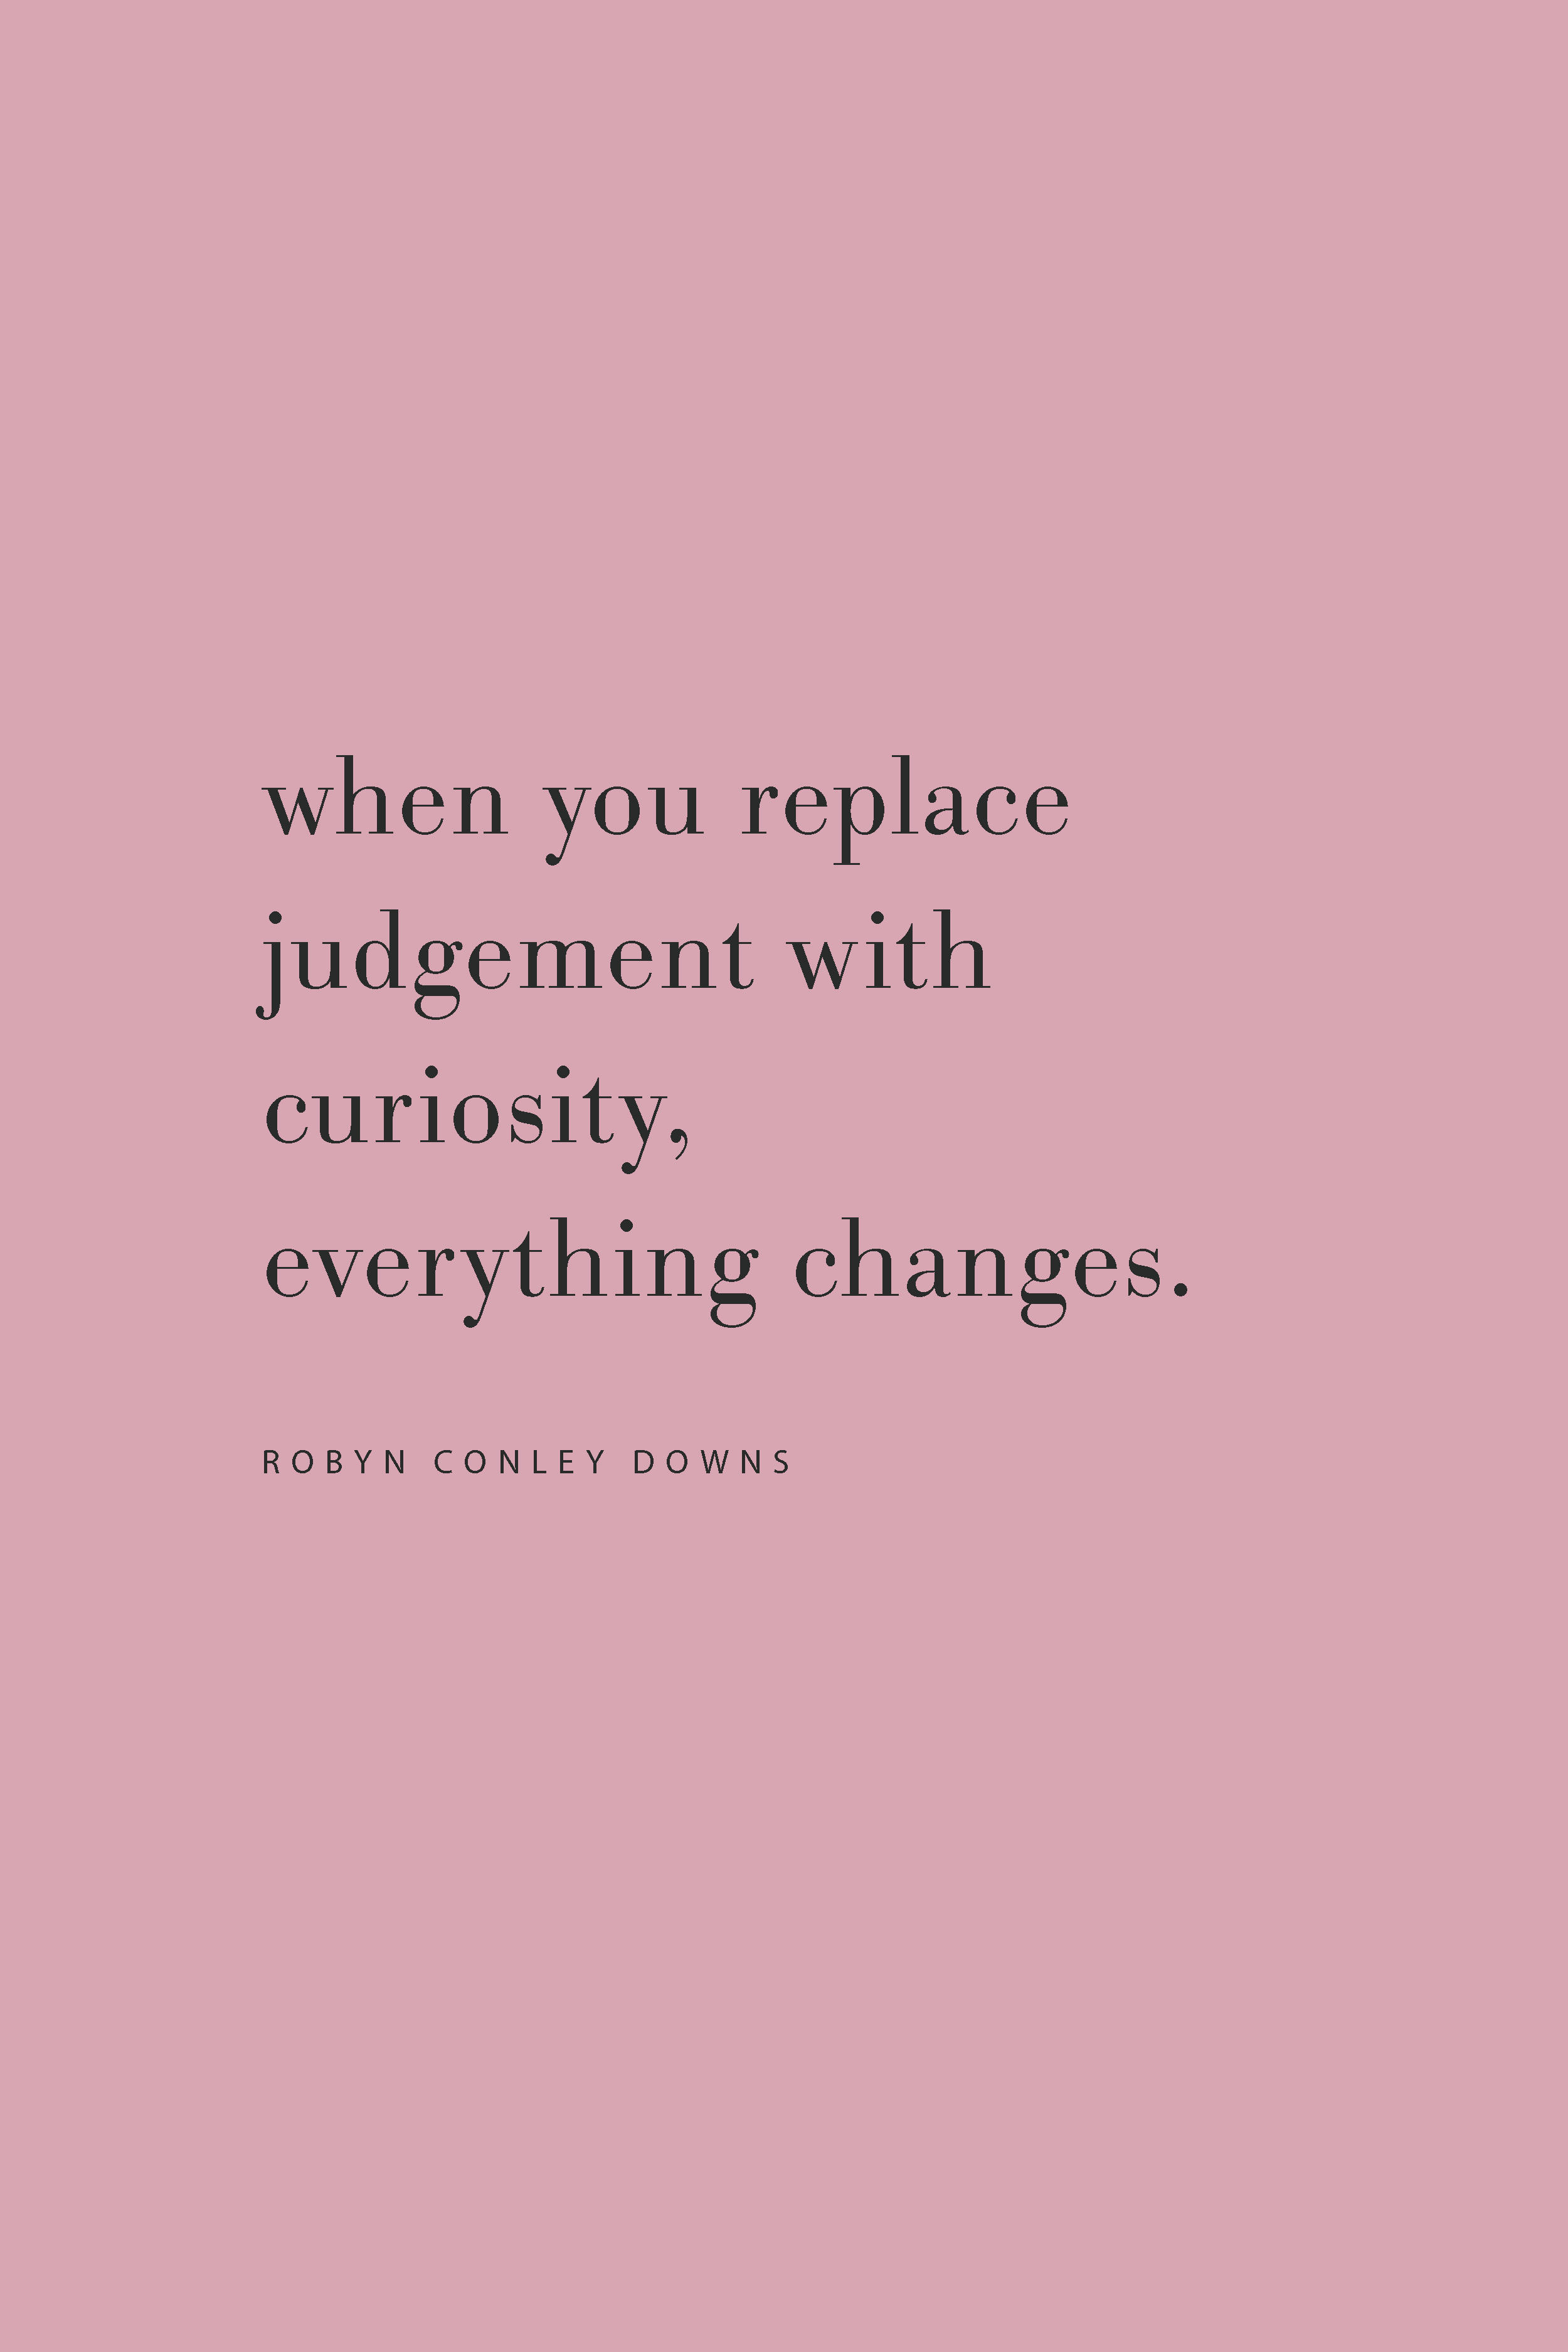 Quote from Robyn Conley Downs. Replace judgement with curiosity, from the Feel Good Effect Podcast. #feelgoodeffectpodcast #podcast #quotes judgement #curiousity